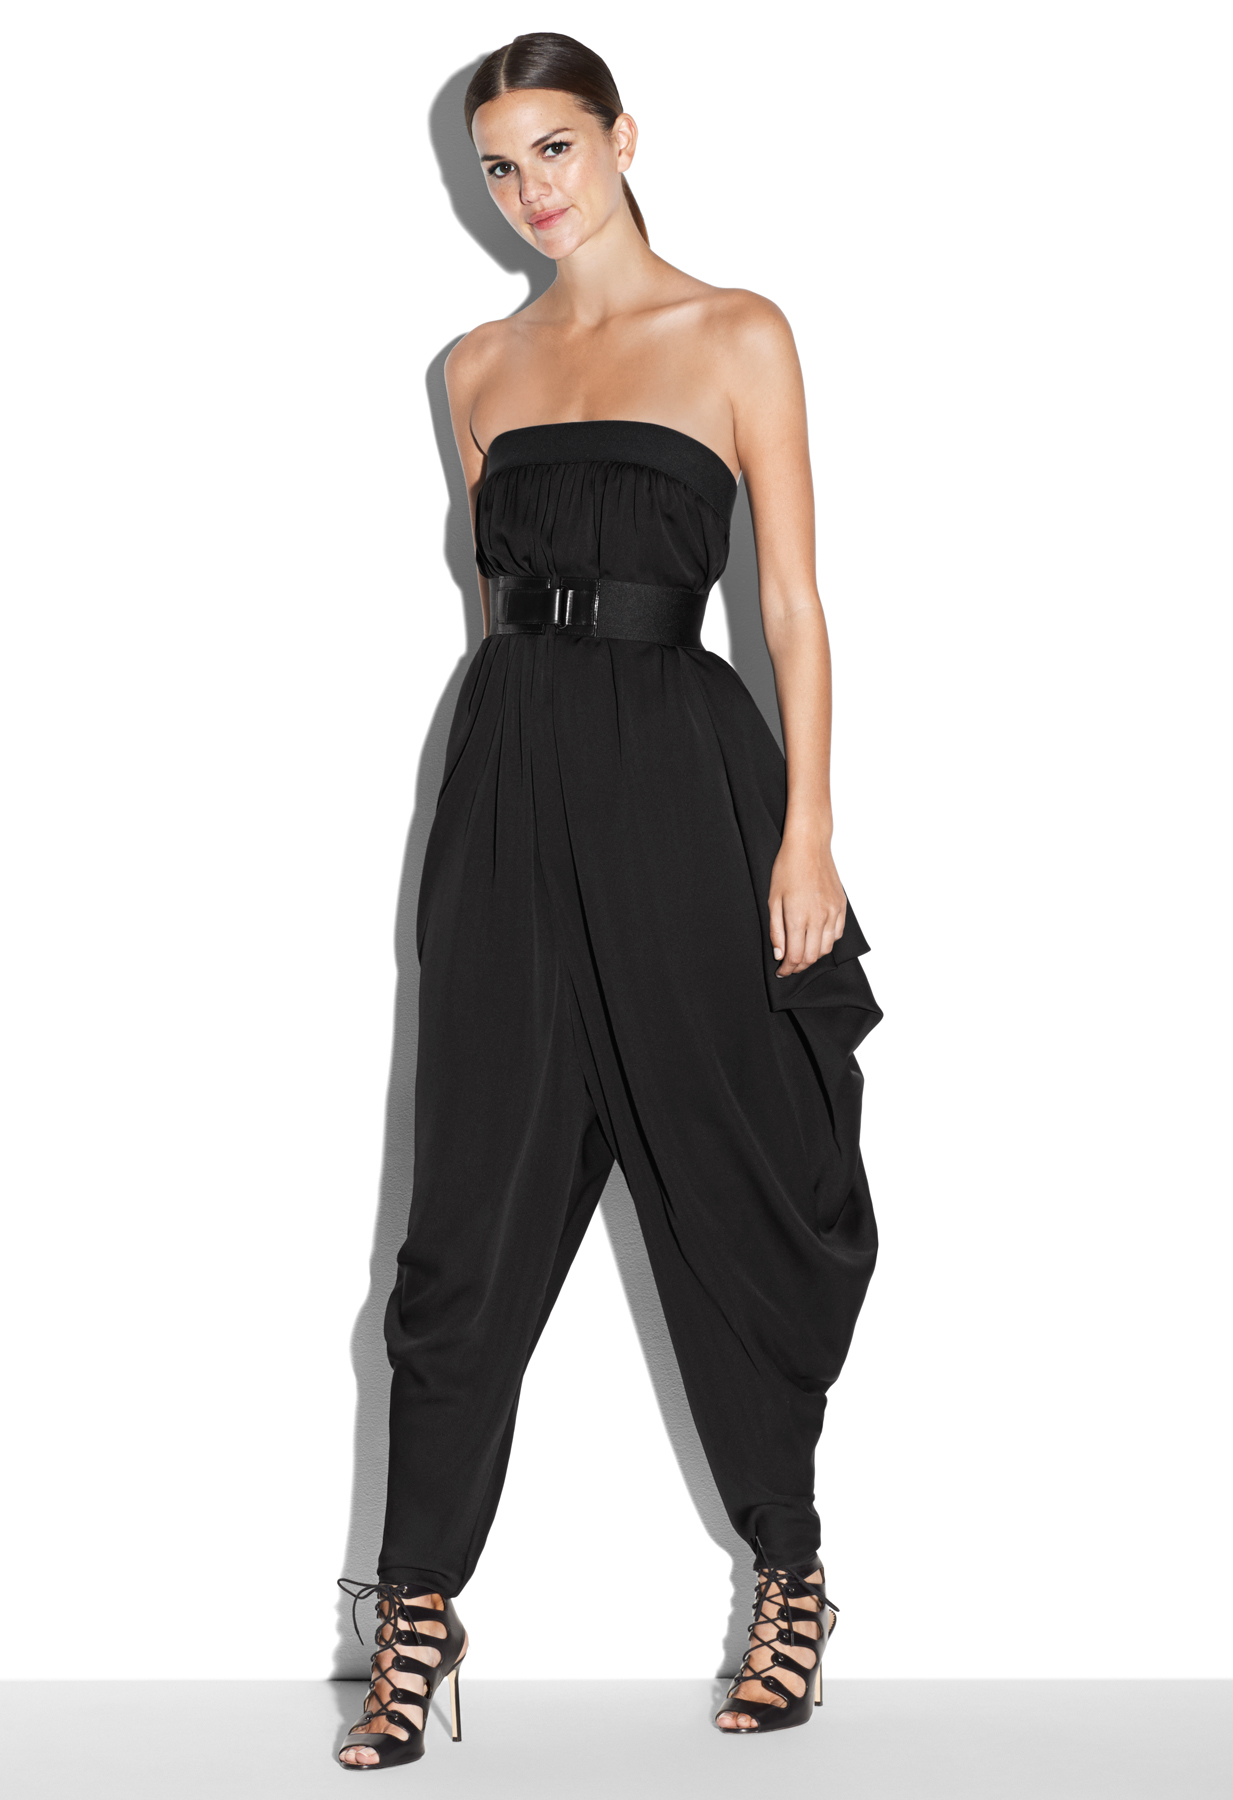 Lyst - Milly Strapless Isosceles Jumpsuit in Black